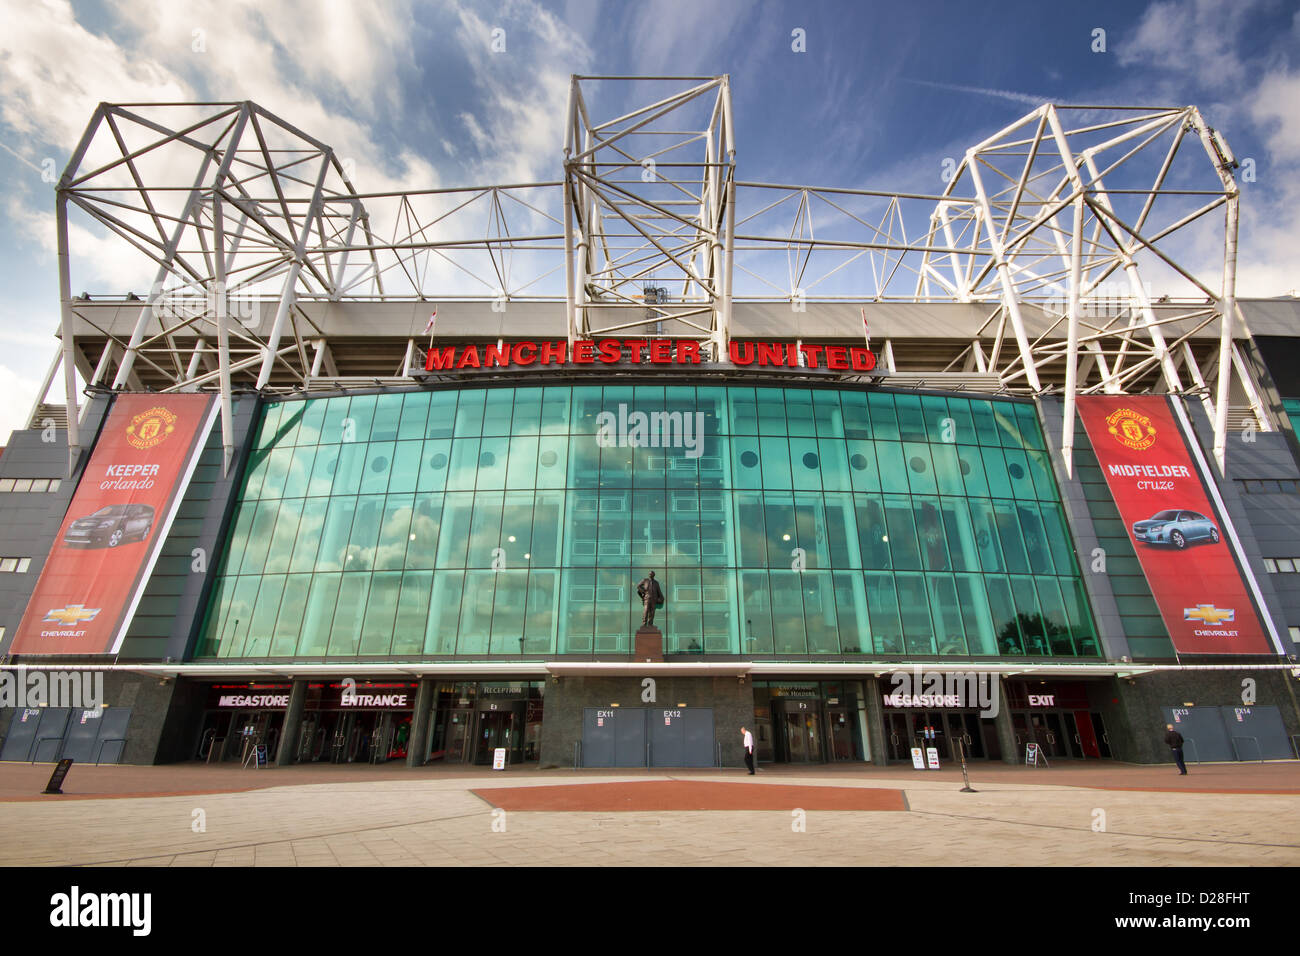 old trafford football stadium home of manchester united football stock photo alamy https www alamy com stock photo old trafford football stadium home of manchester united football club 53048292 html